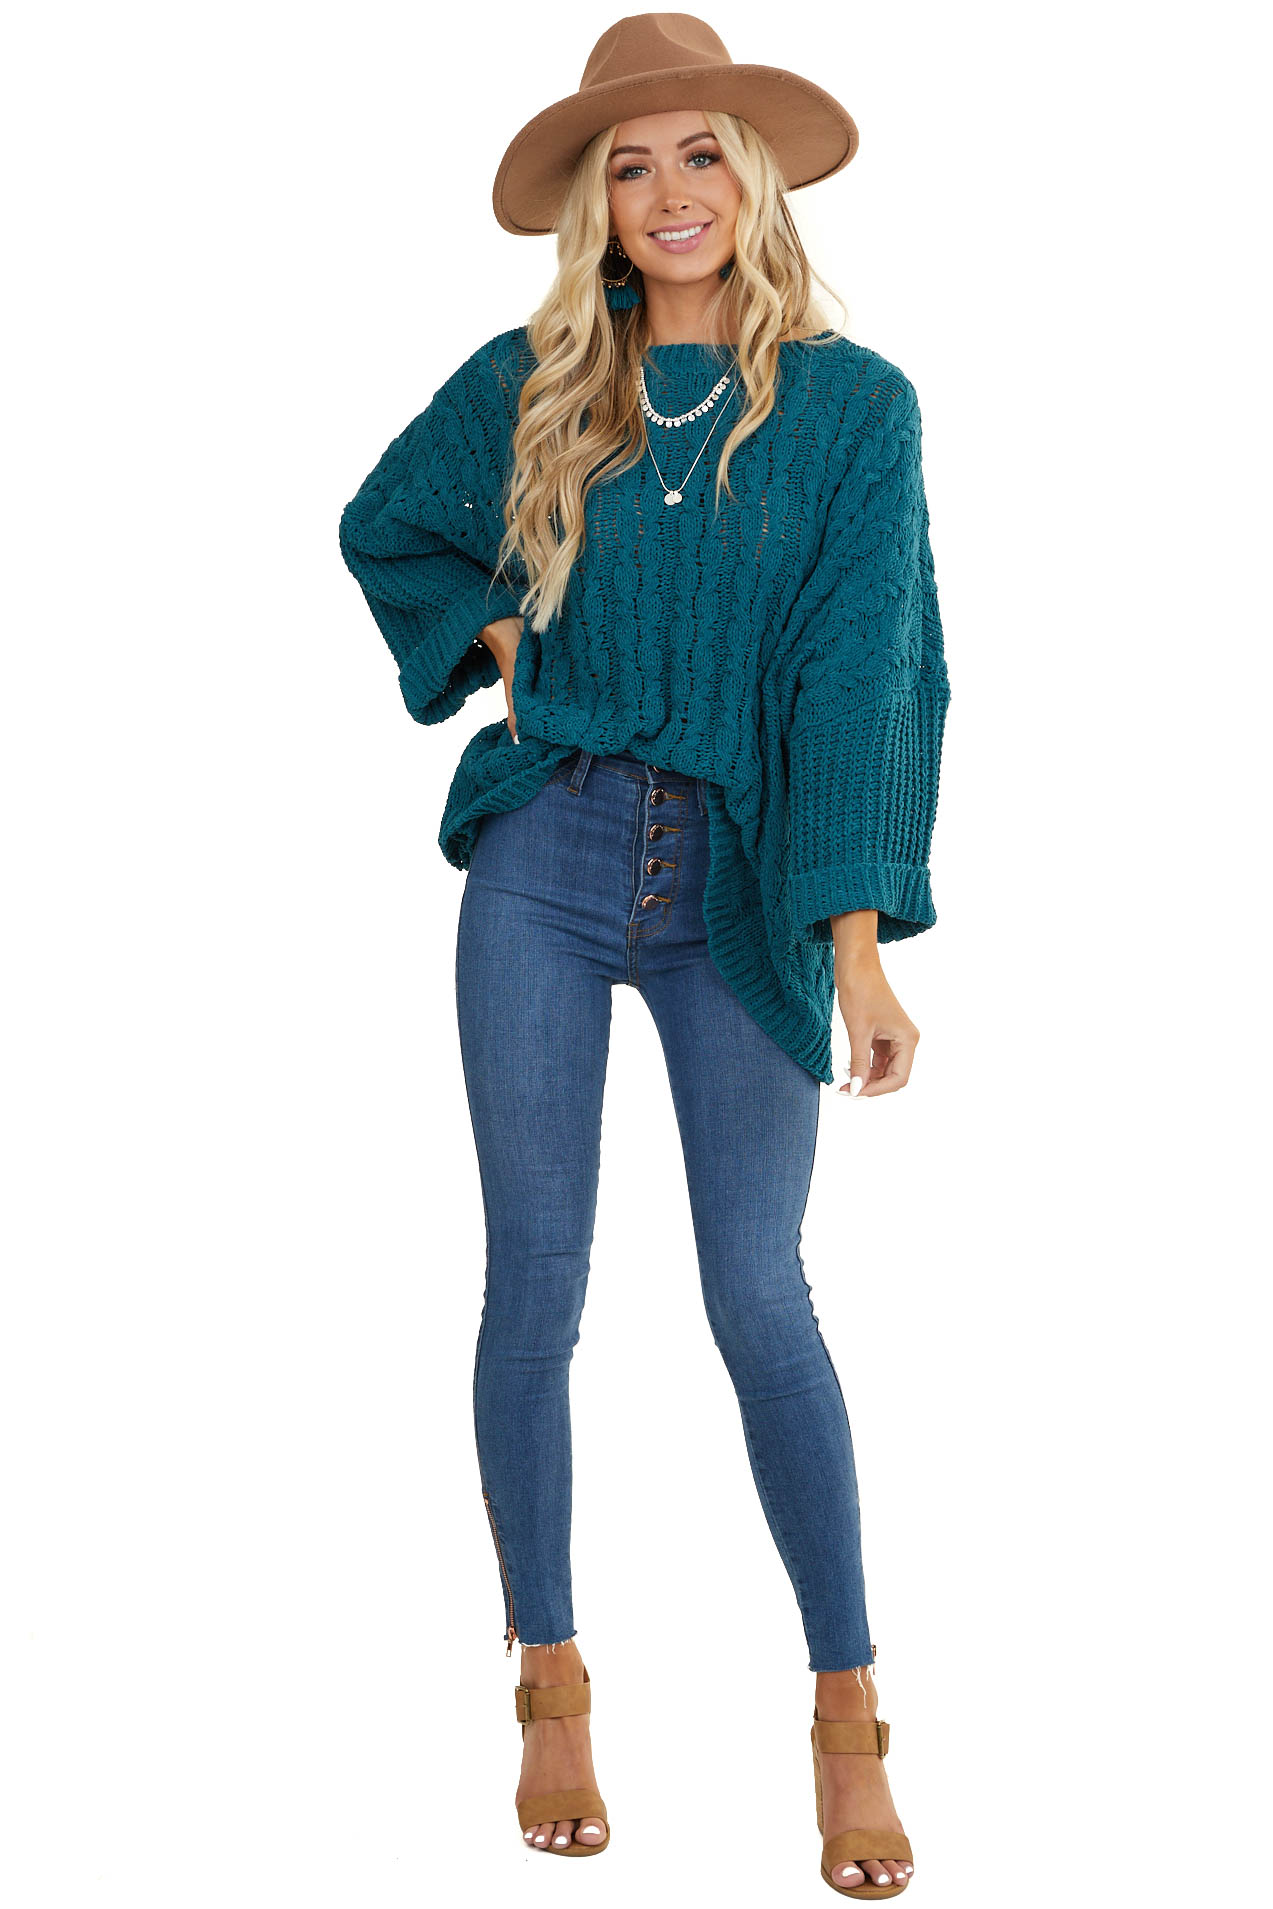 Deep Pine Oversized Cable Knit Sweater with 3/4 Sleeves